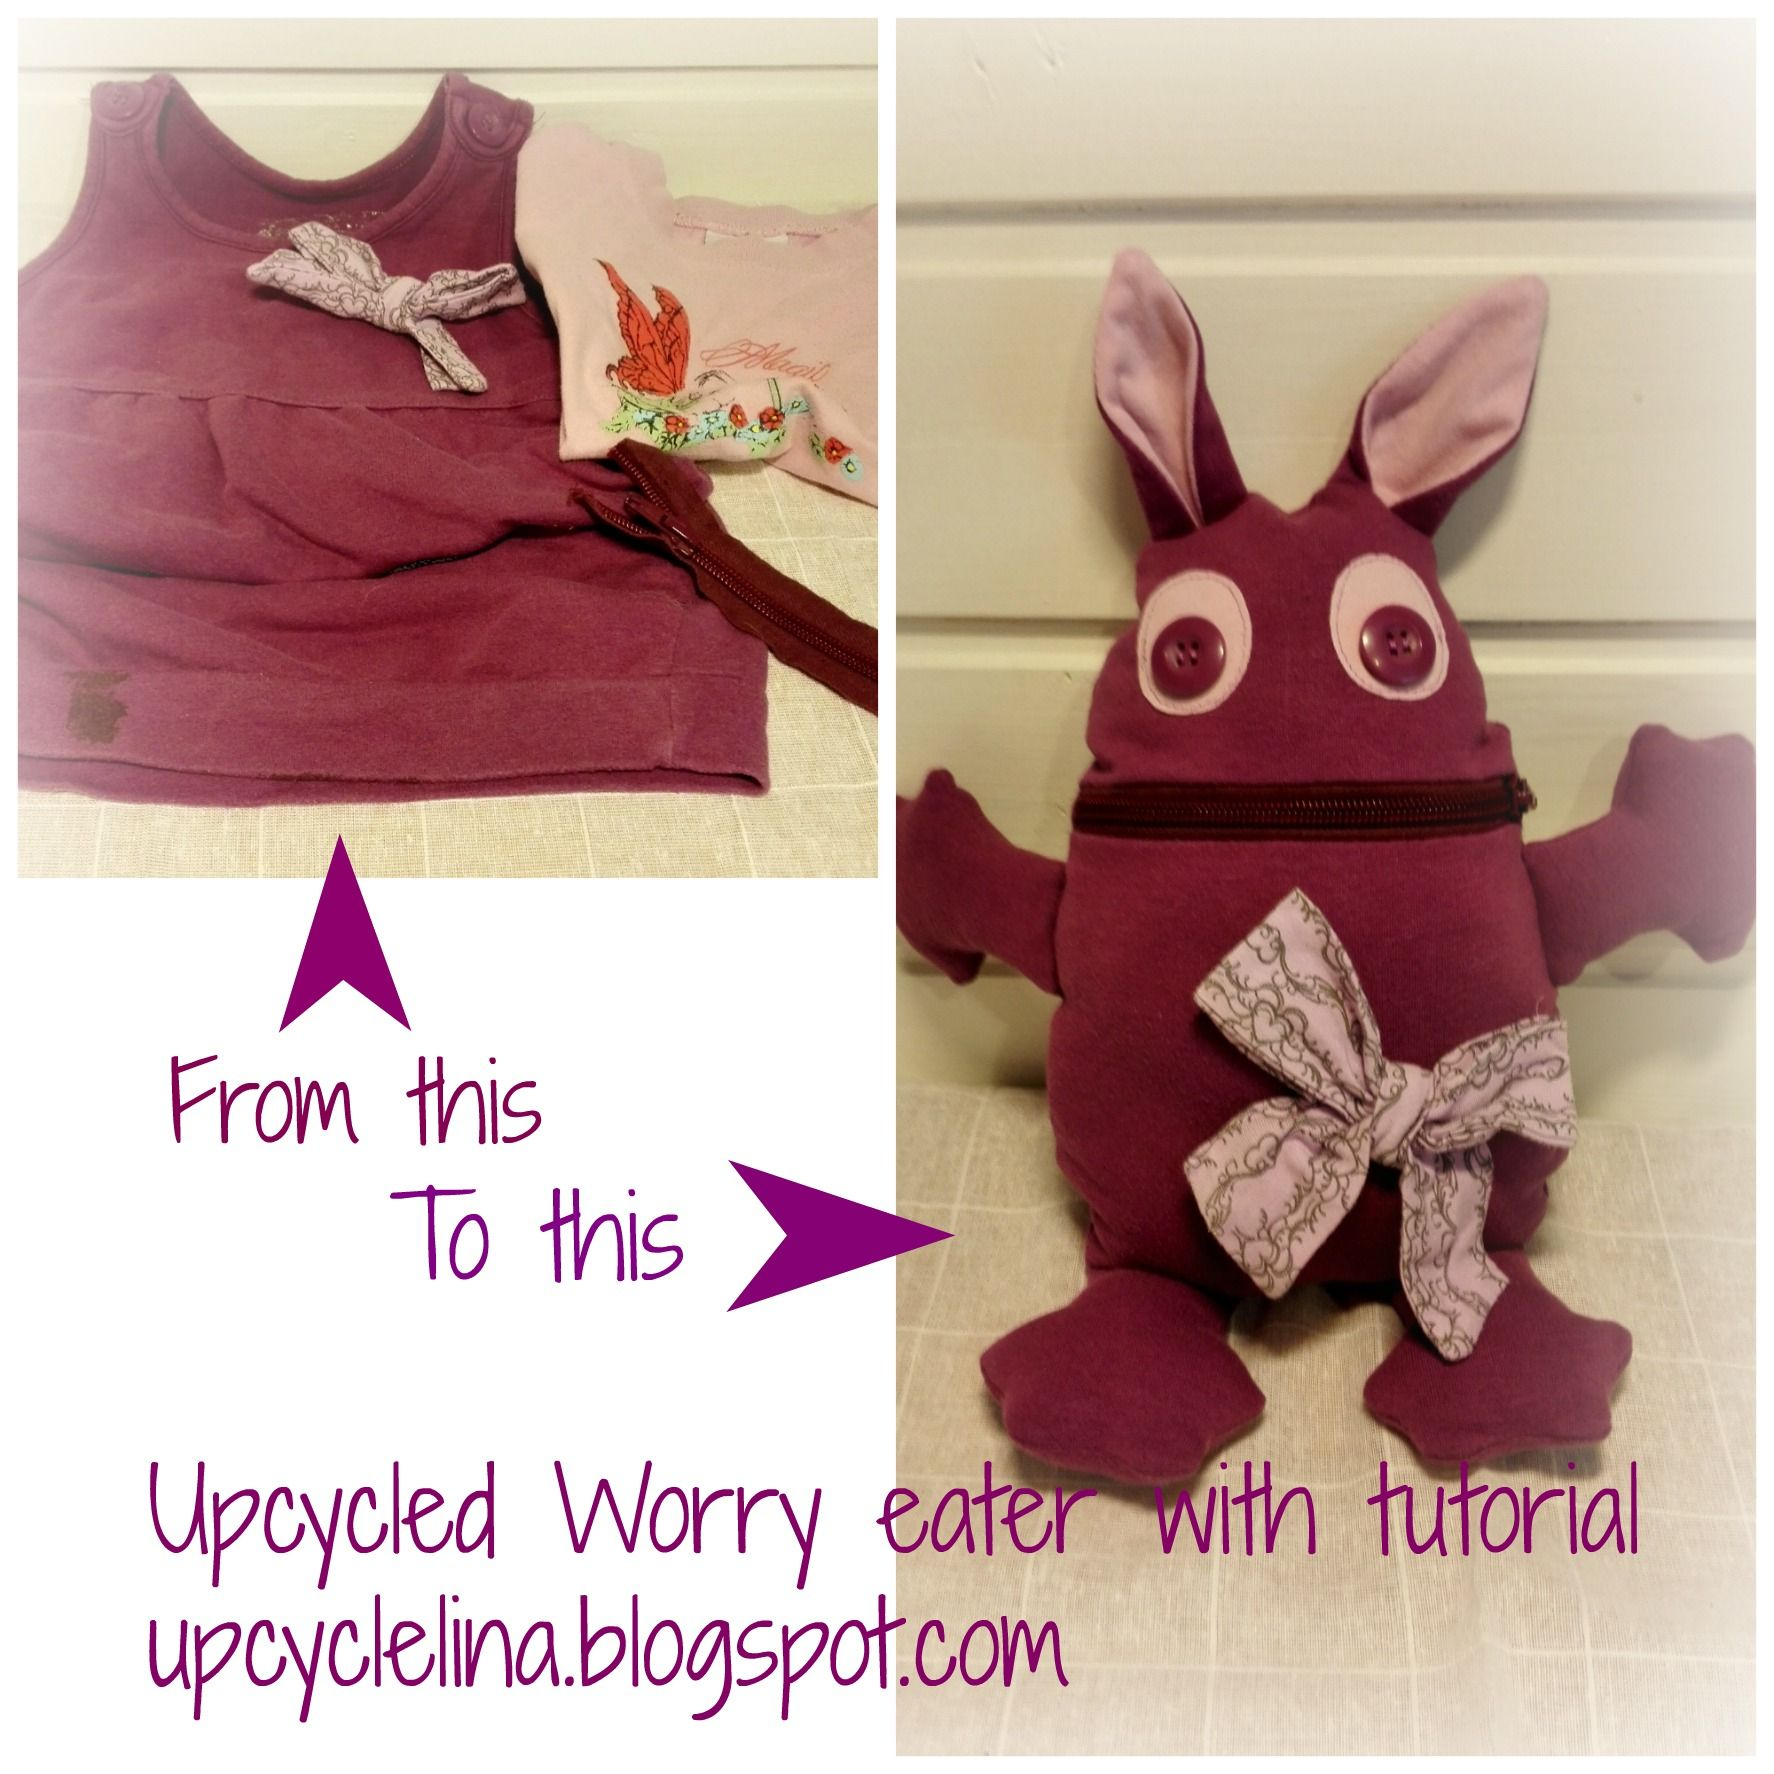 Upcycled old clothes to funny plush toy as known as worry eater, tutorial in the blog.